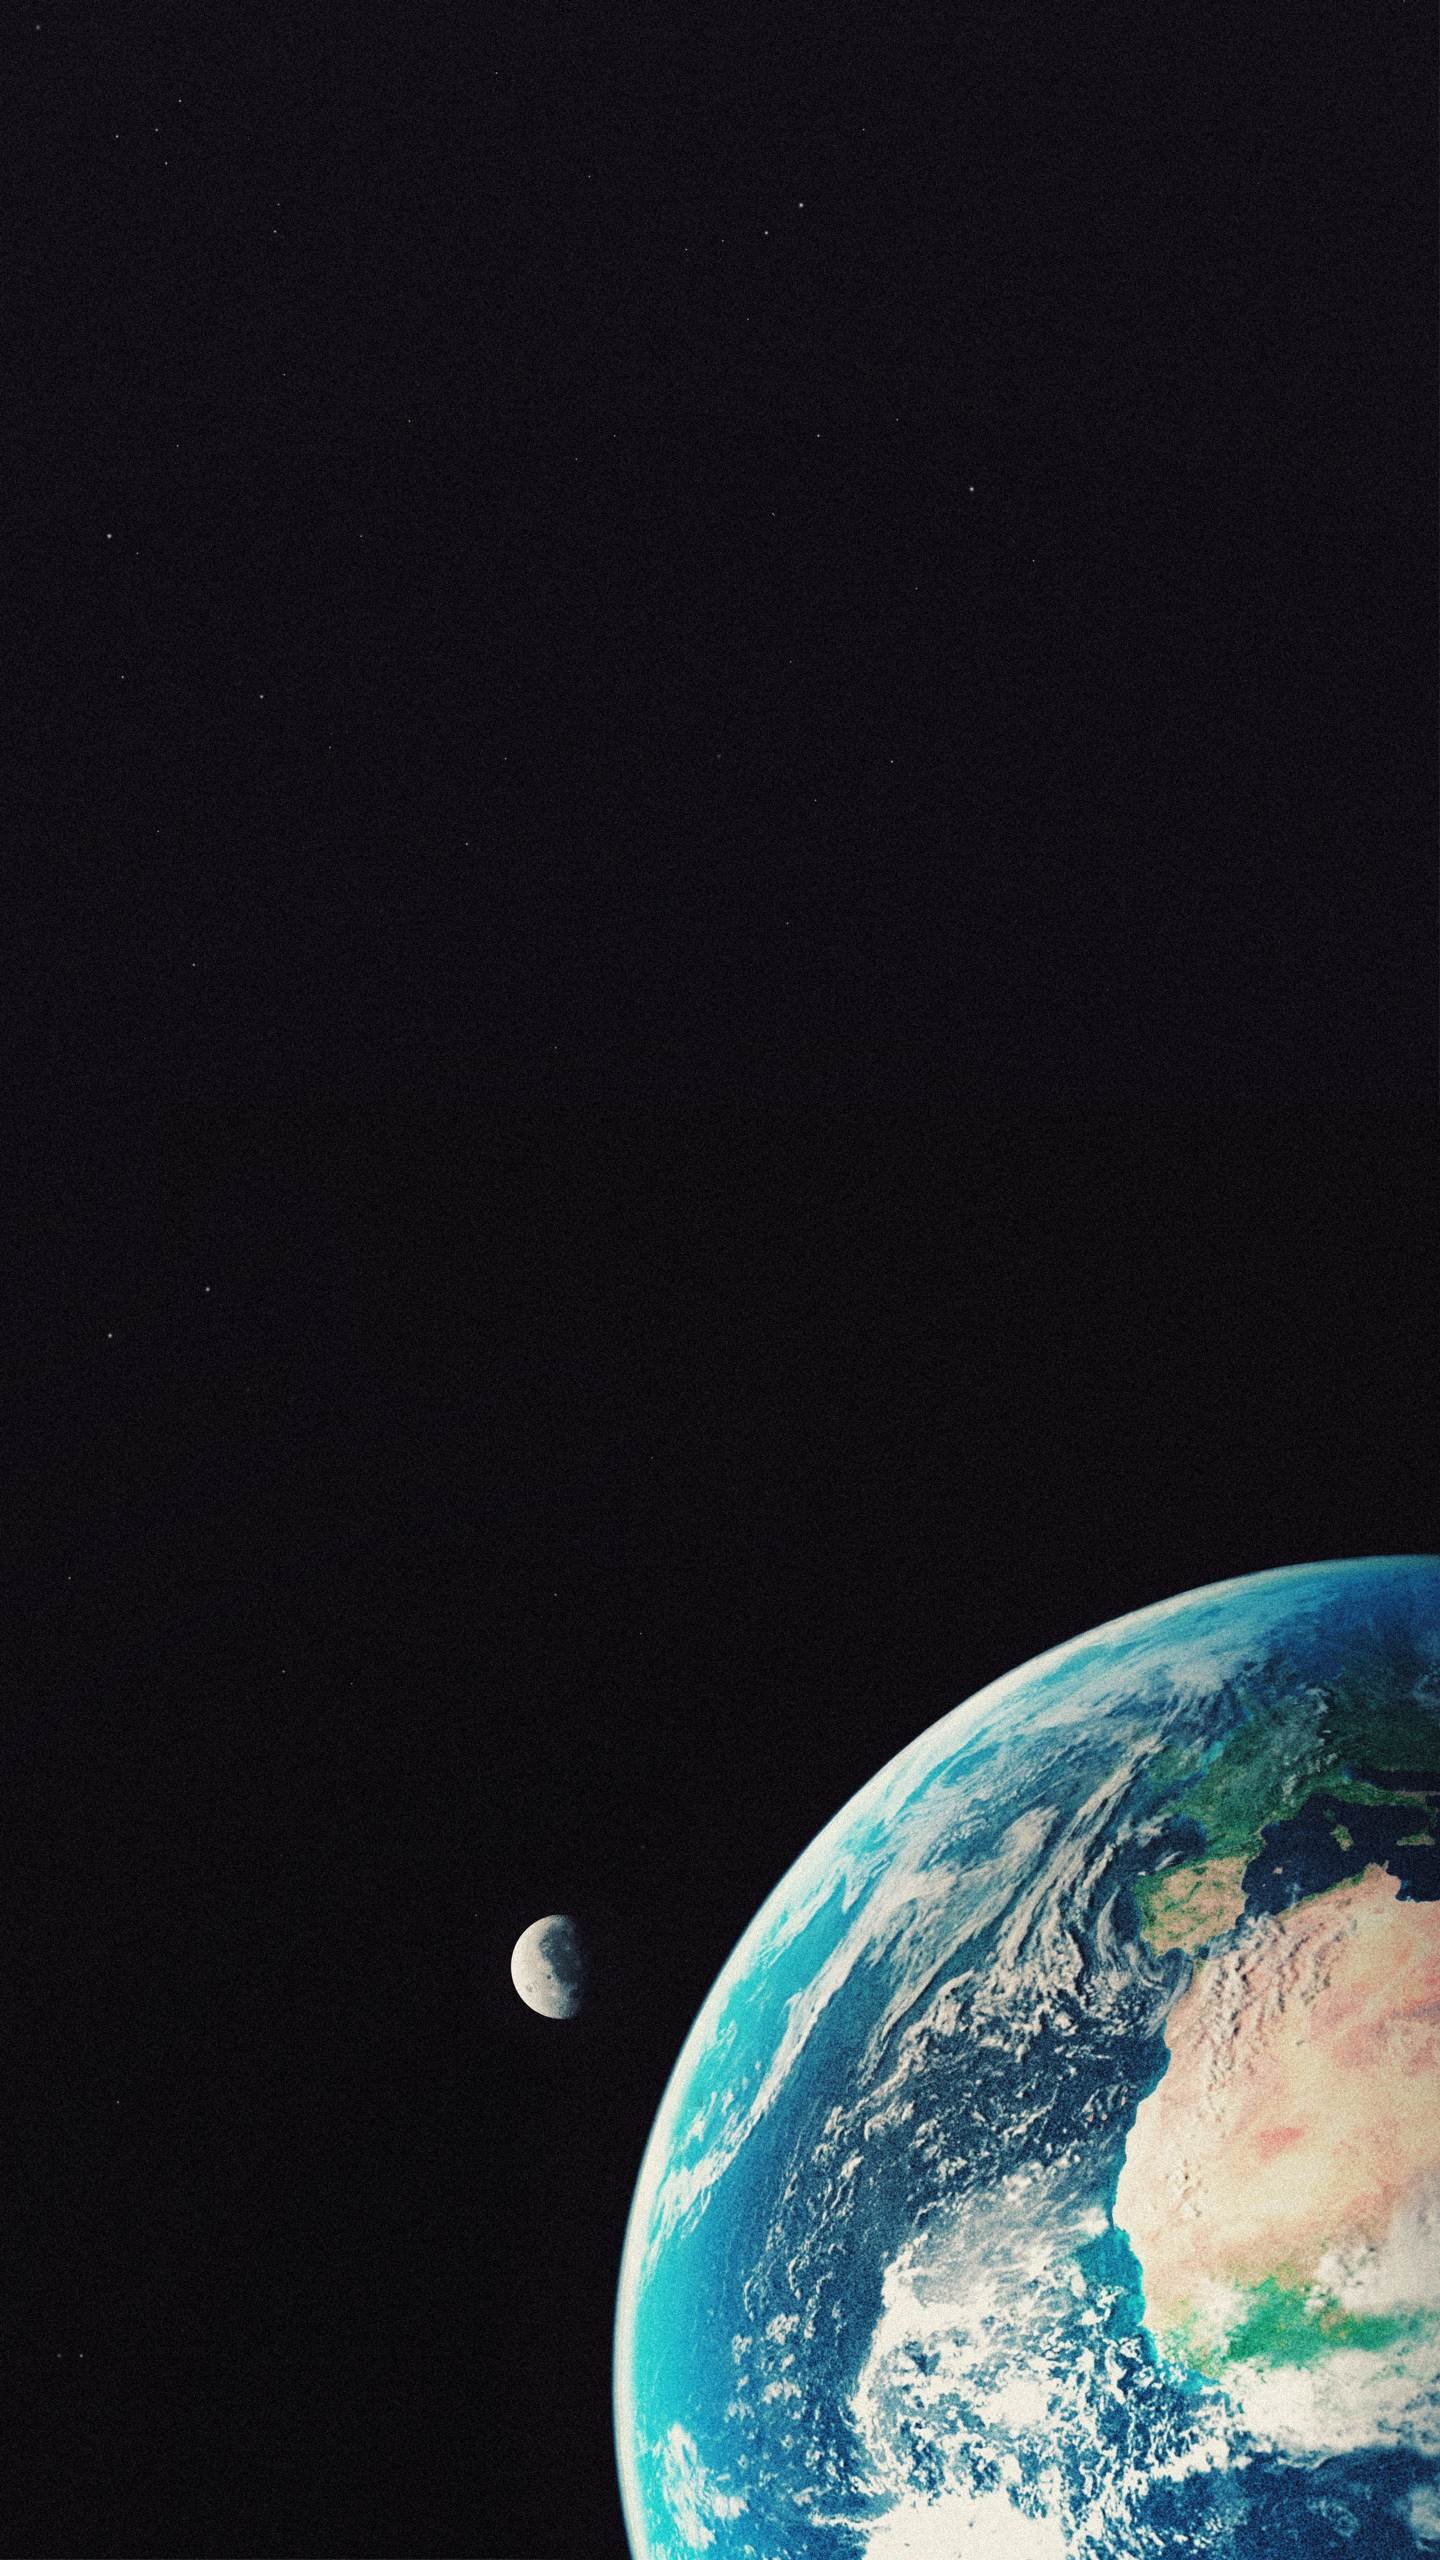 Compuer graphic earth and moon simulation